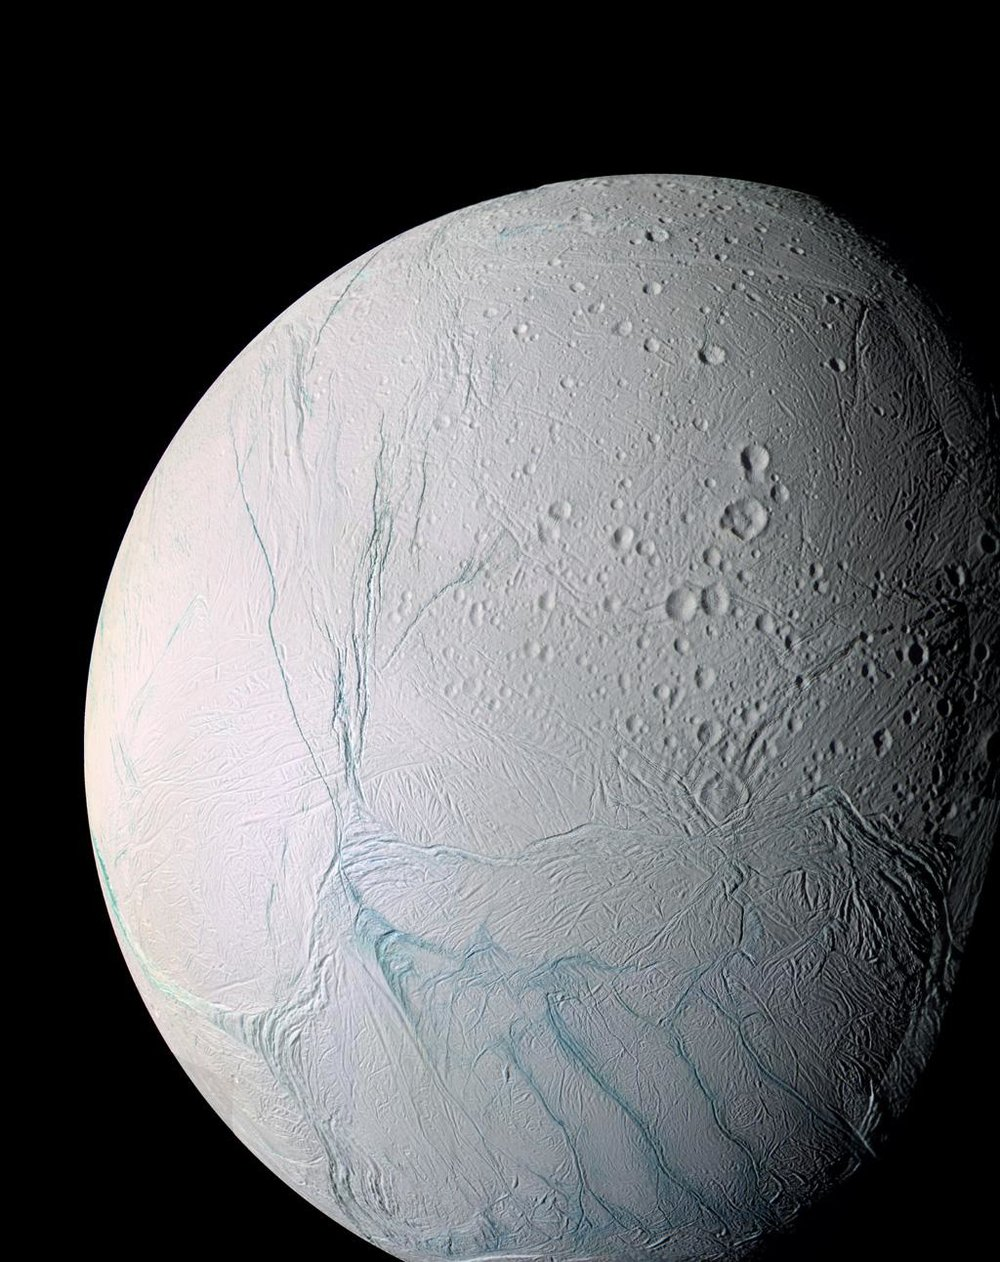 Cassini researchers have found evidence the active south polar region of Enceladus -- the fractured terrain seen here at bottom -- may have originally been closer to the icy moon's equator. - Image Credits: NASA/JPL-Caltech/ Space Science Institute